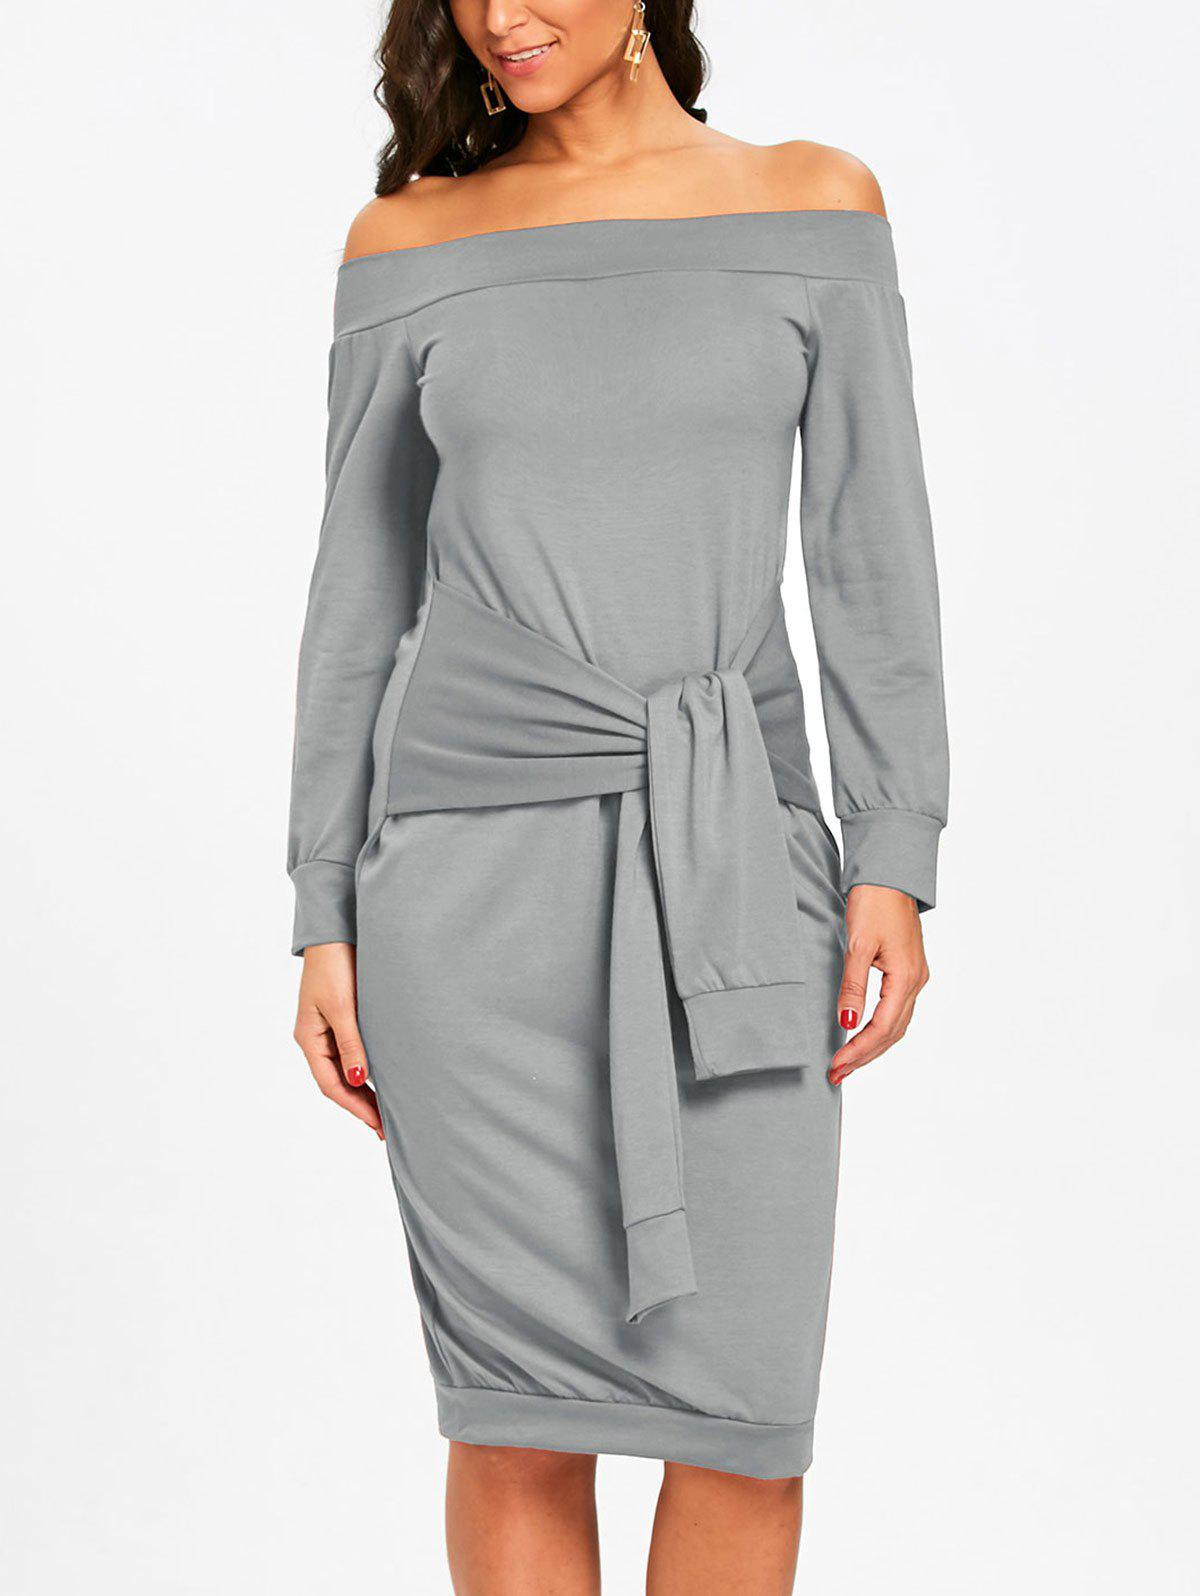 Off Shoulder Tie Waisted Sweatshirt Dress - GRAY L